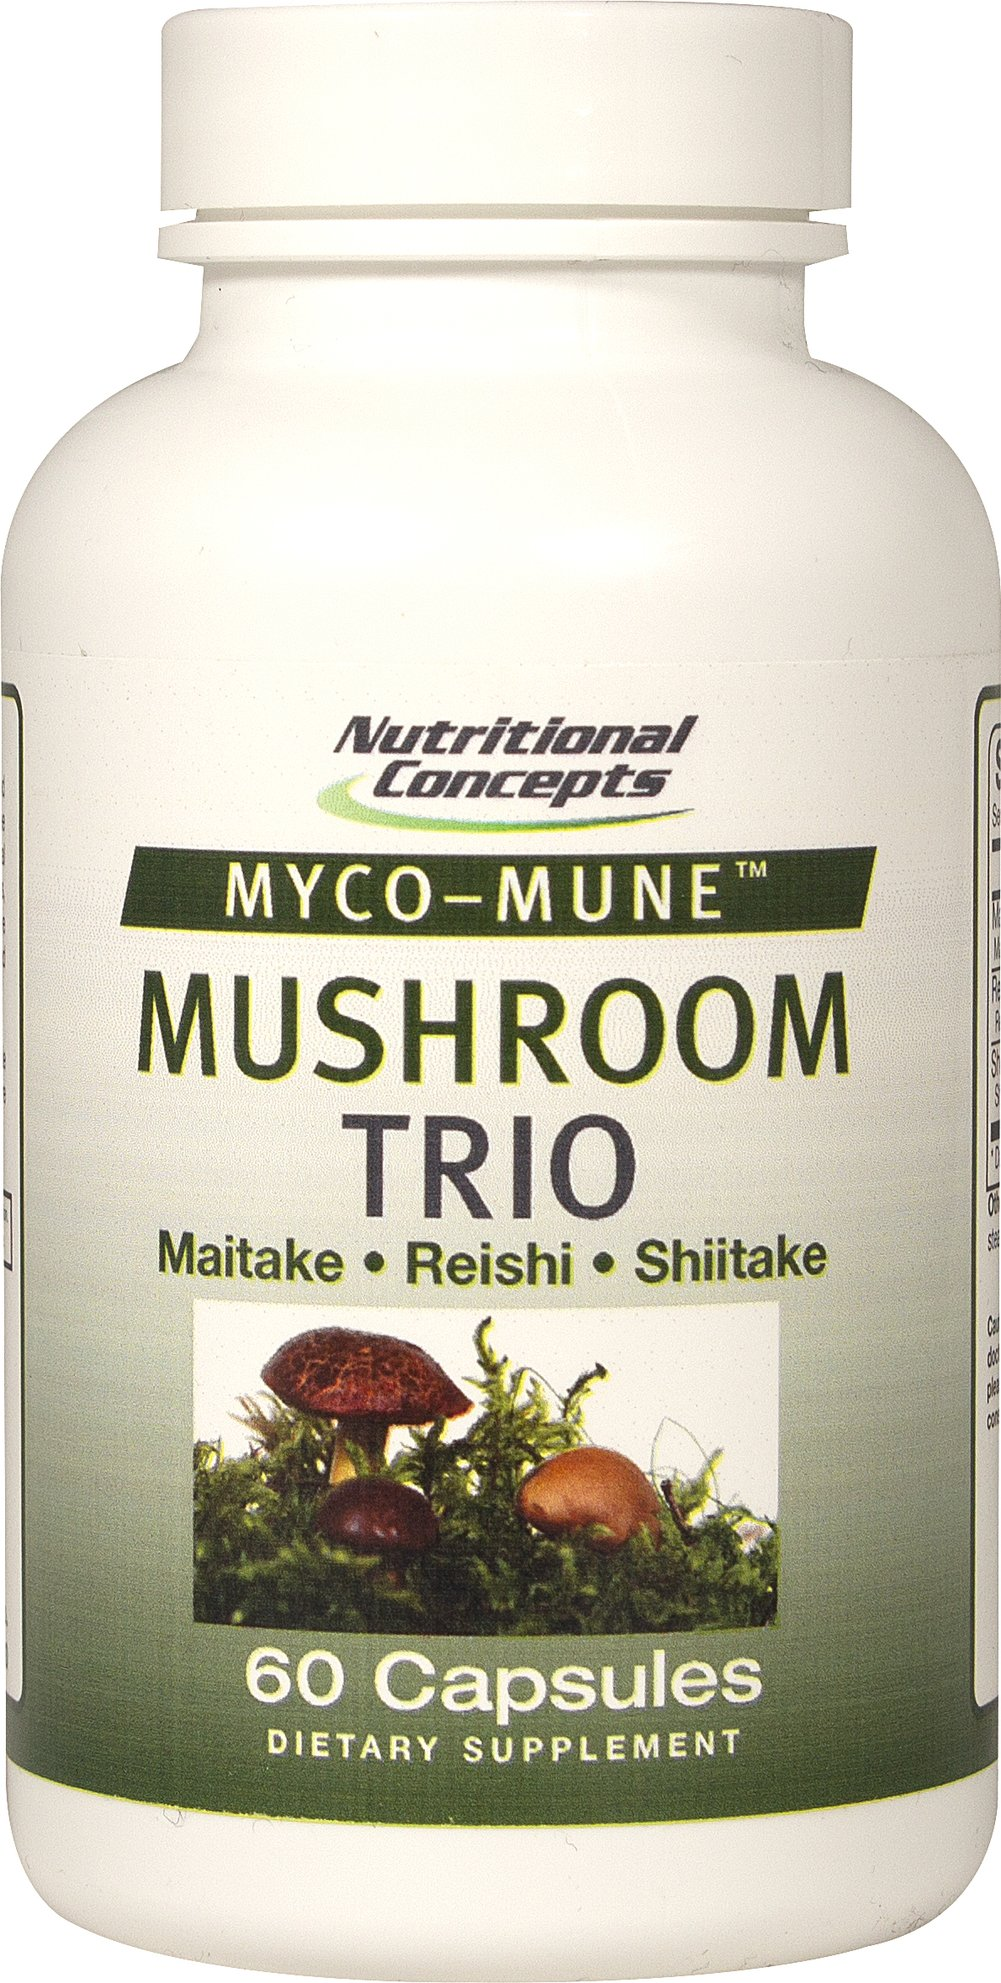 Myco-Mune™ Mushroom Trio Maitake, Reishi, Shiitake <p>Myco-Mune™ Mushroom Trio – is an optimized blend of the worlds finest mushrooms. Mushrooms are a leading source of the essential antioxidant selenium and ergothioneine. Eastern cultures have revered mushrooms health benefits for centuries. </p><p></p> 60 Capsules